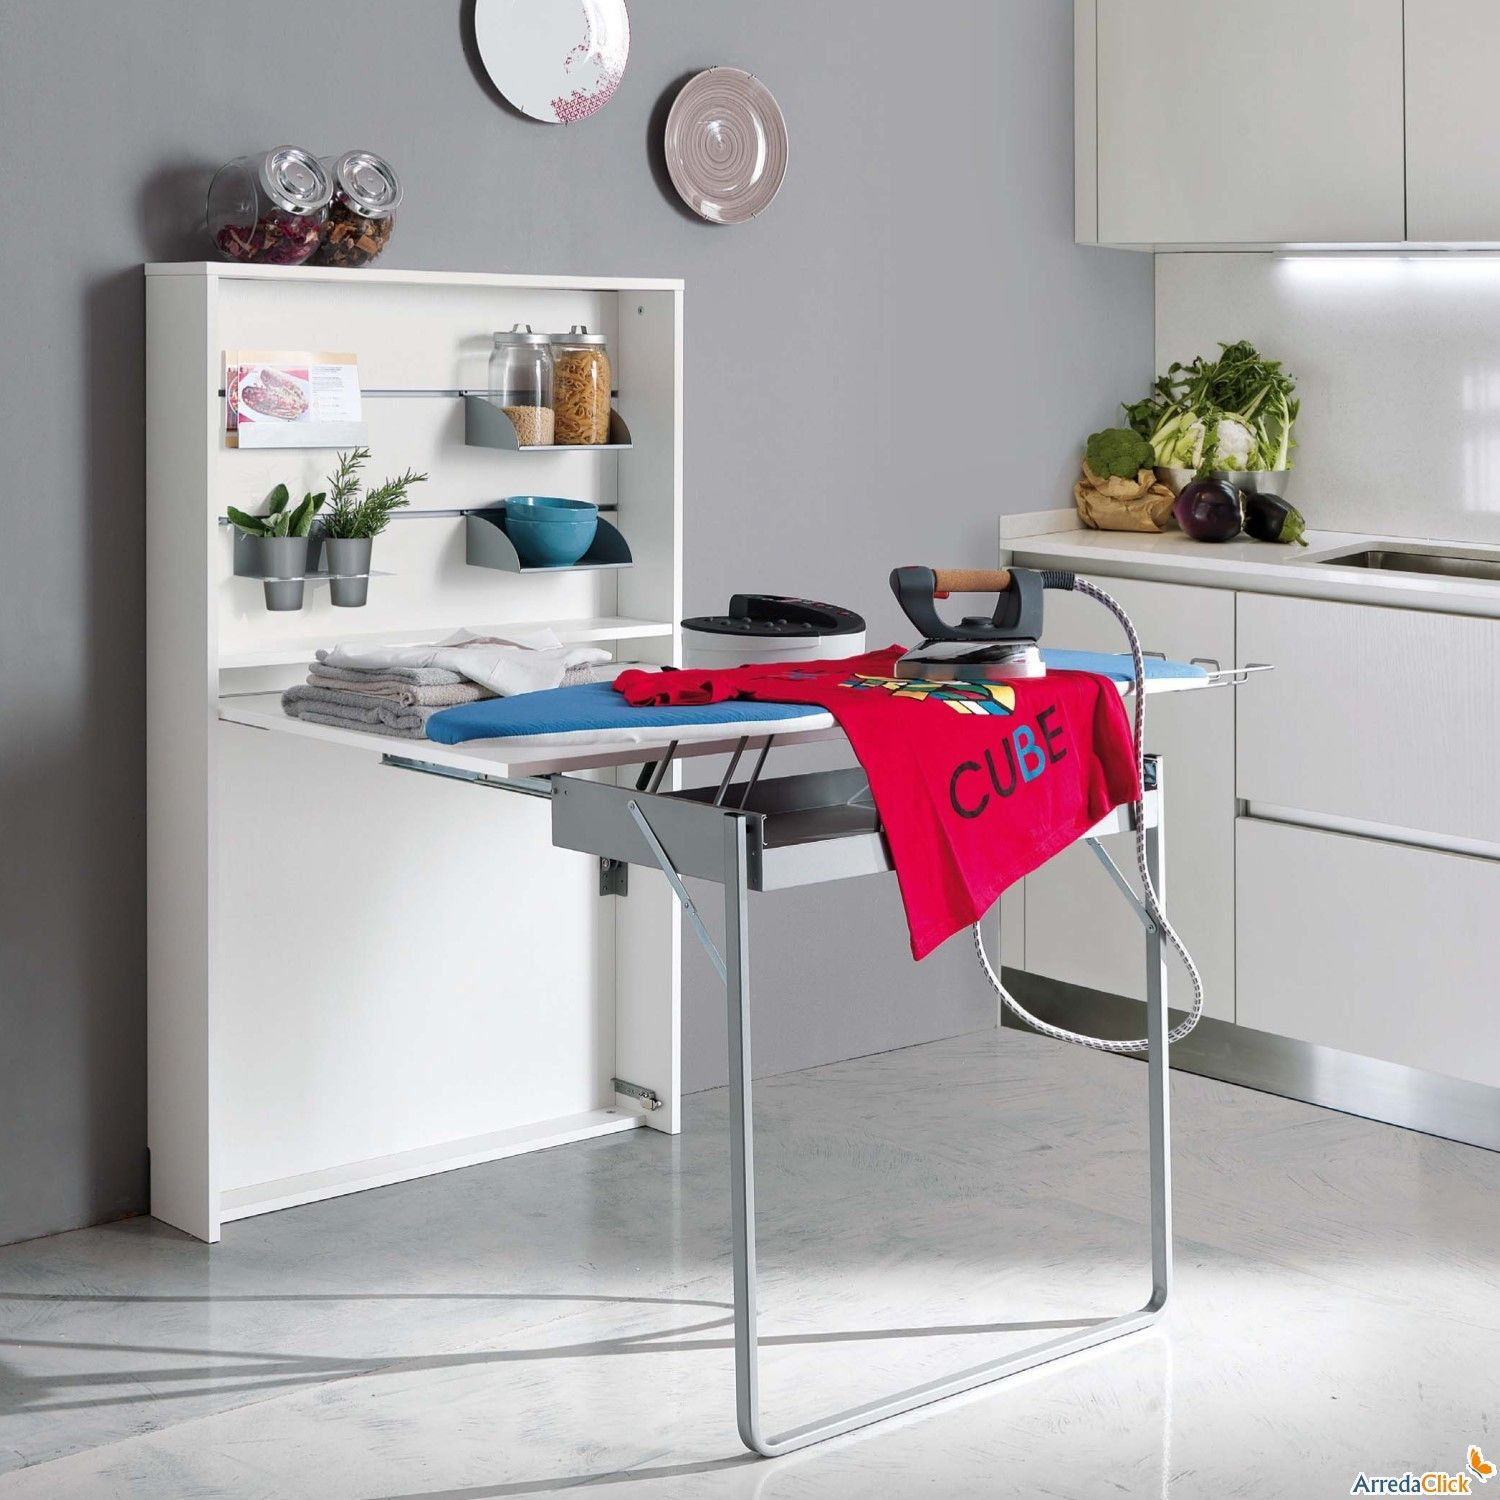 Lovely Innovative Furniture Space Saving great round space saving dining table and chairs best ideas about space saver dining table on Furniture Beautiful Stylish Kitchen Design With Expandable Console Table Into Dining Console Table Or Ironing